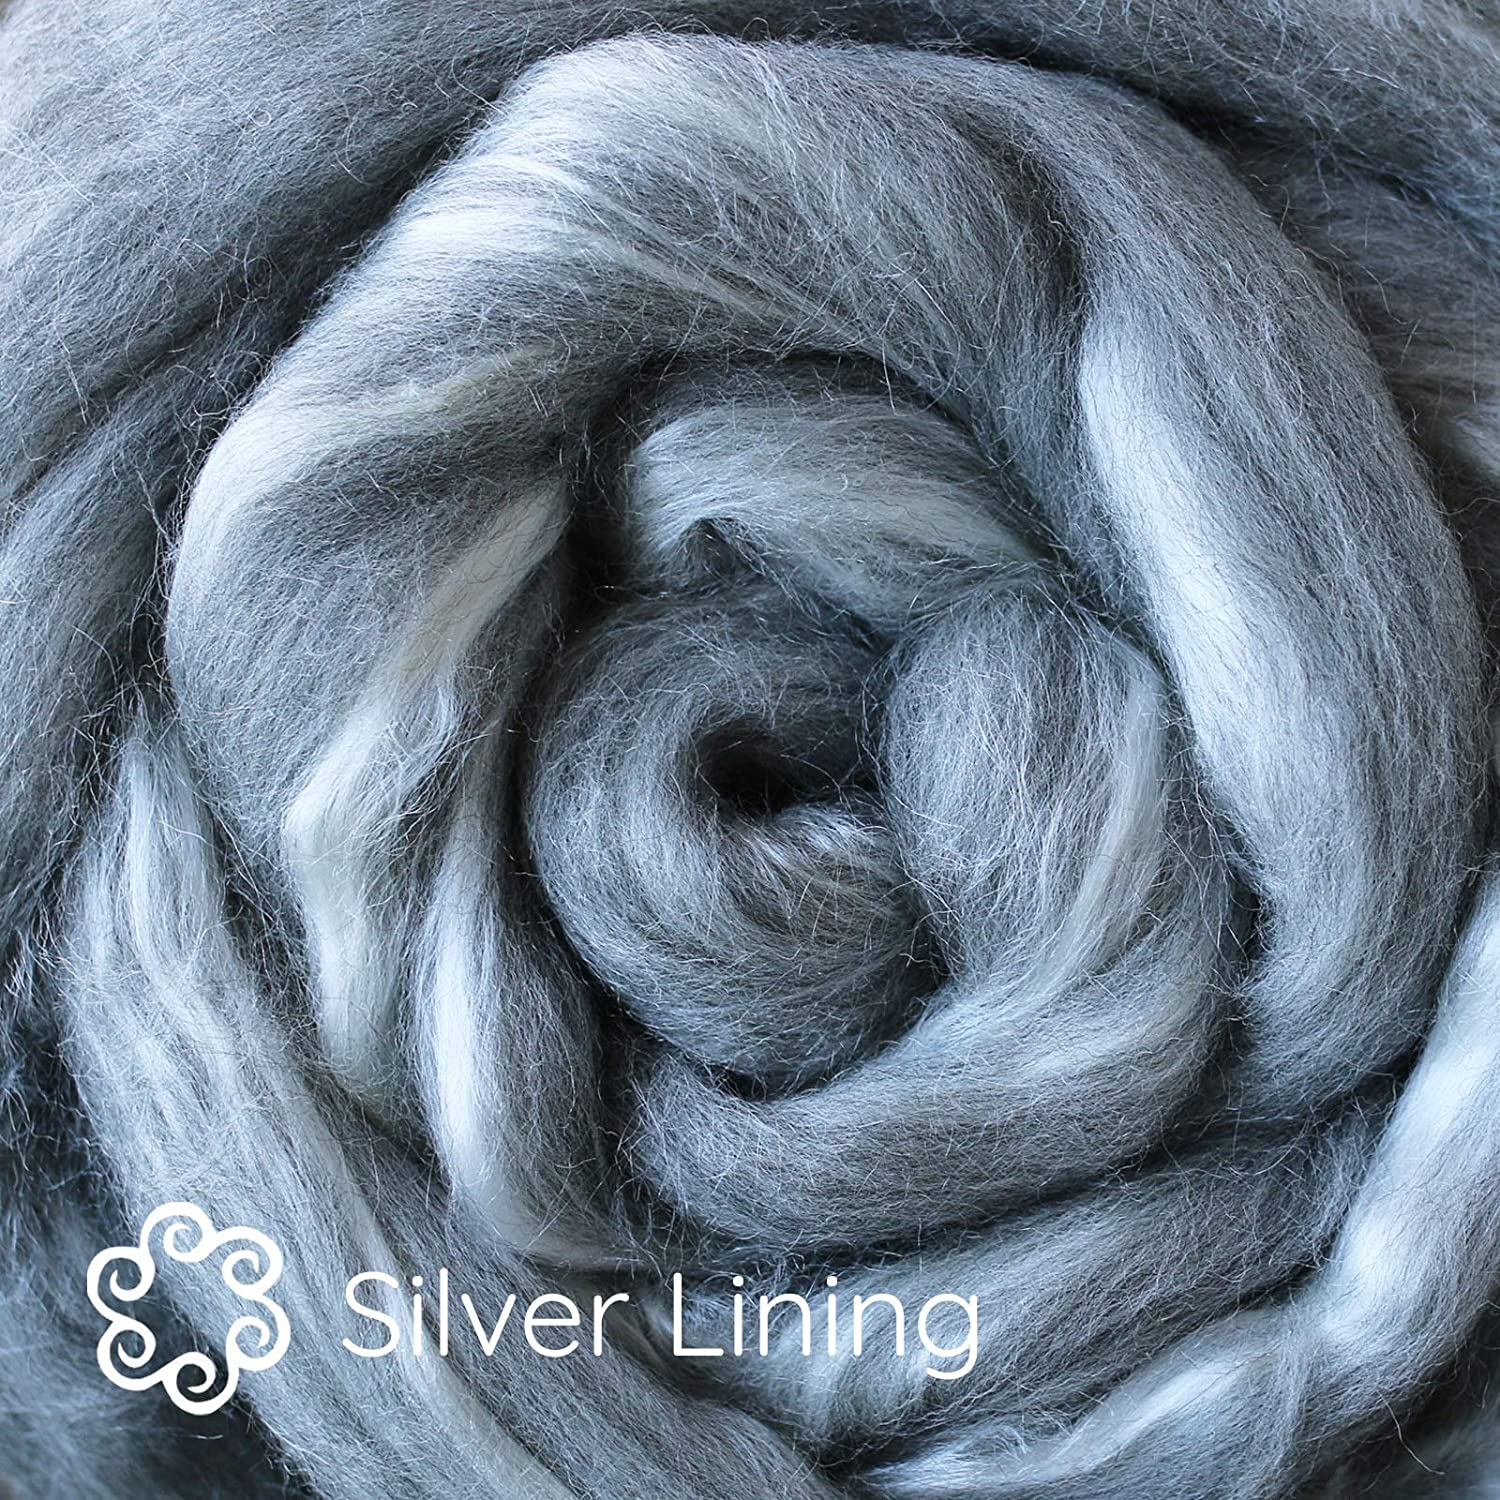 Soap Making Needle Felting Wet Felting Nuno Felting Paper Making and Embellishments Silk Merino Fiber for Spinning Silver Lining Super Soft Combed Top Wool Roving for Hand Spinning